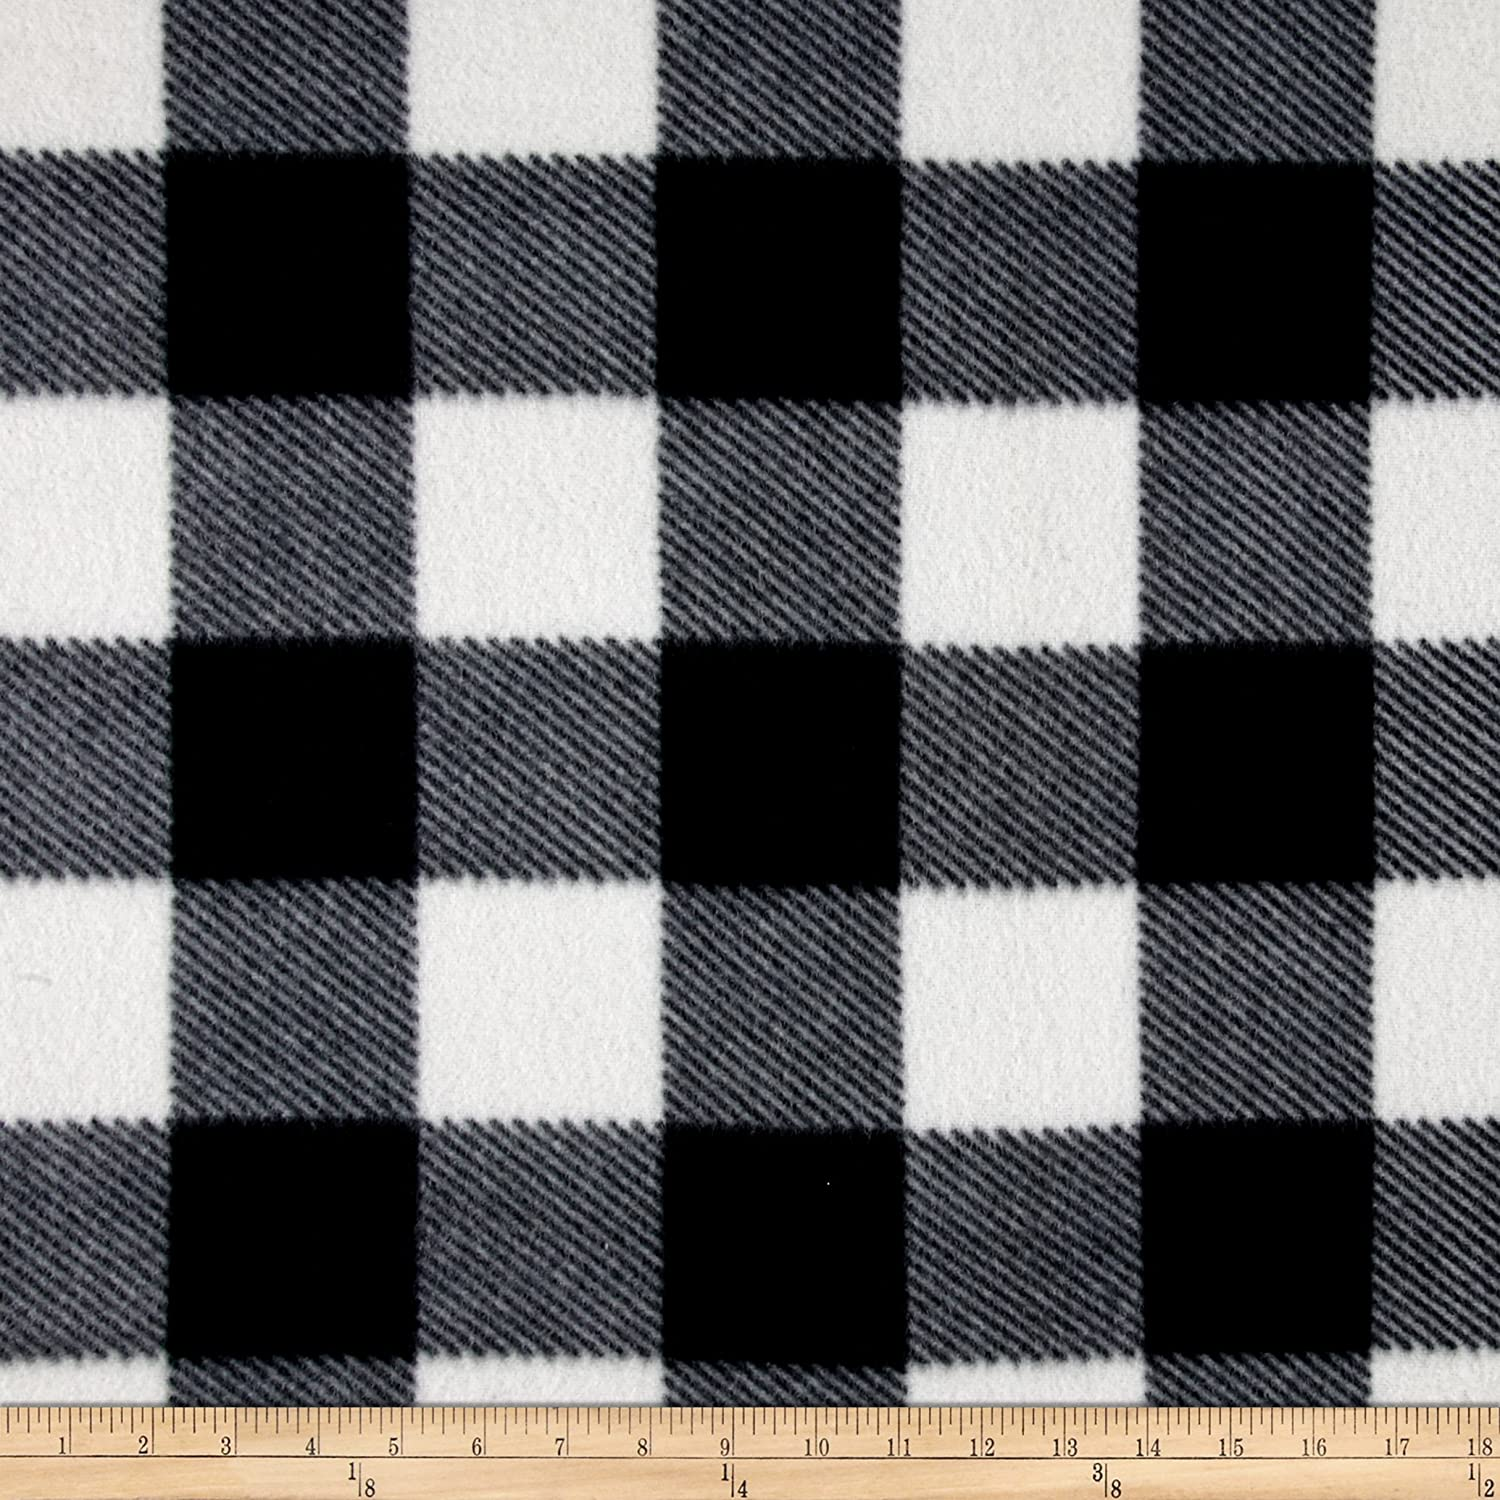 Newcastle Fabrics Fleece Buffalo Plaid Print Black/White Yard 0427096